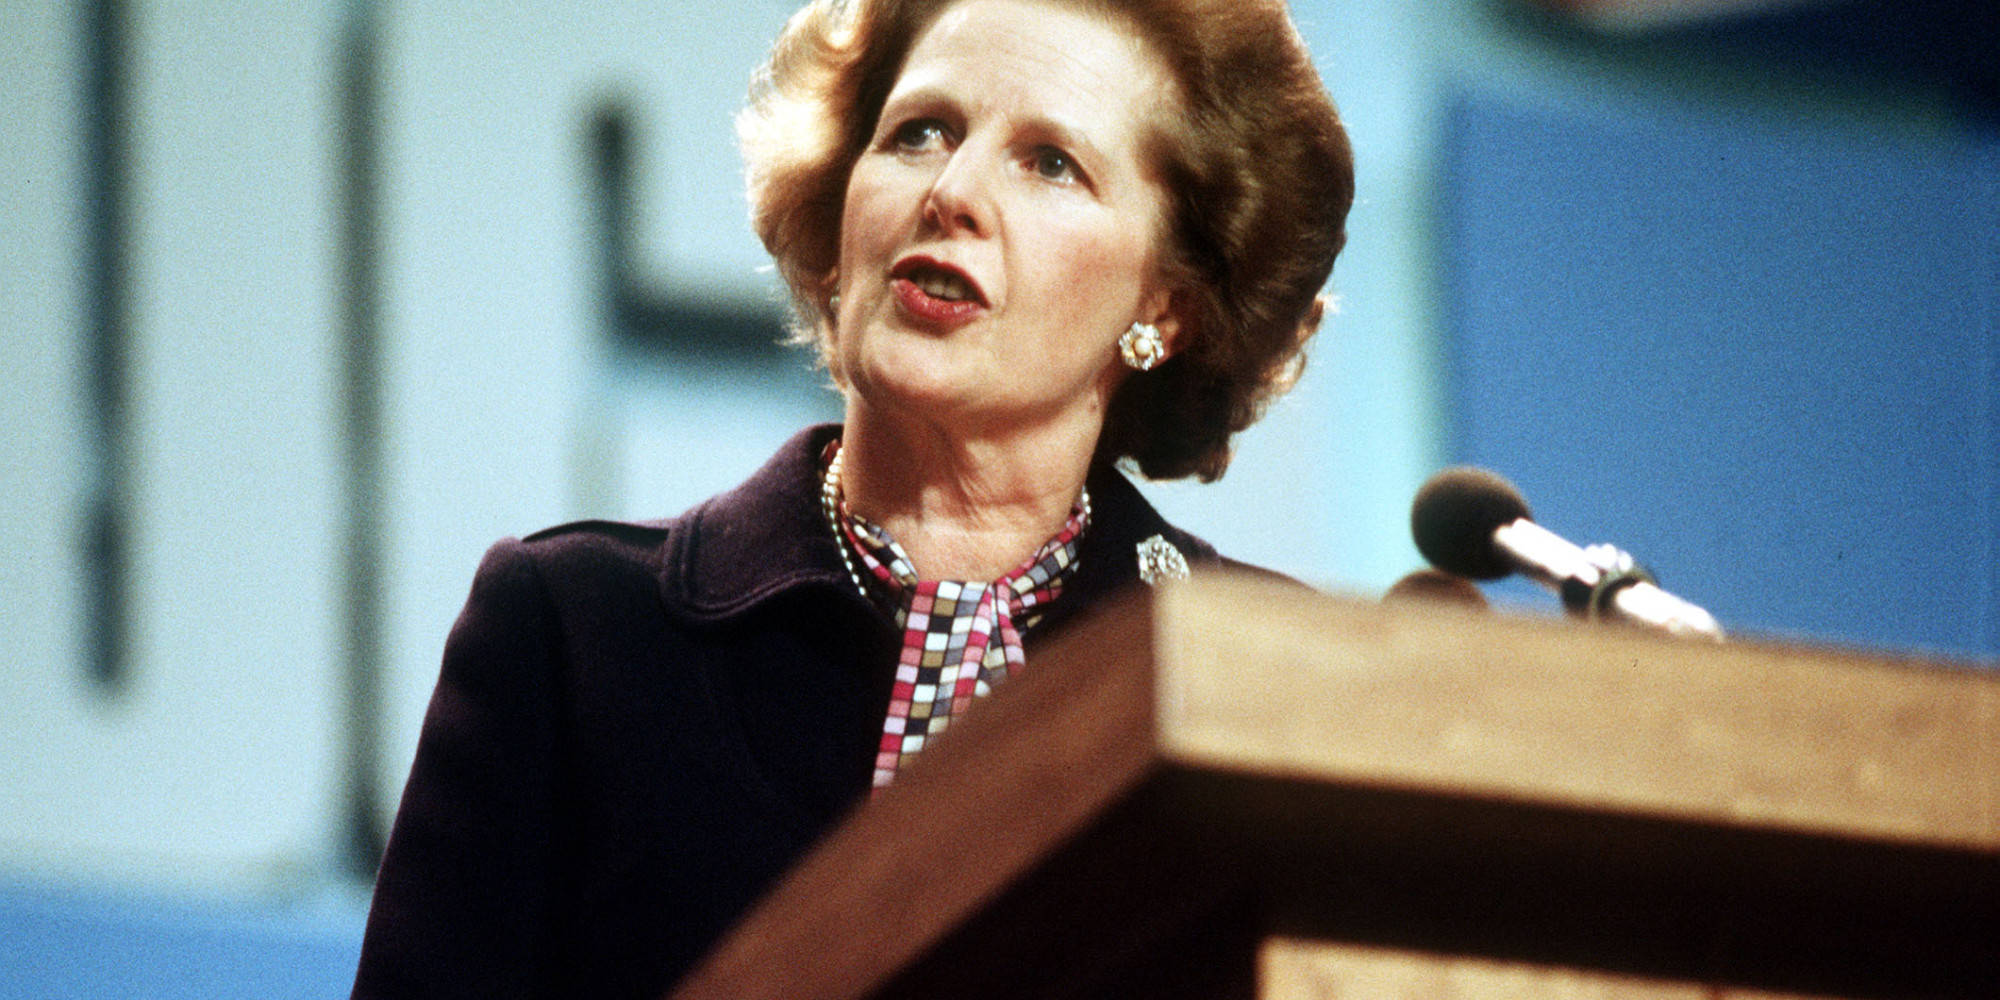 Did Margaret Thatcher Know About Child Sex Allegations